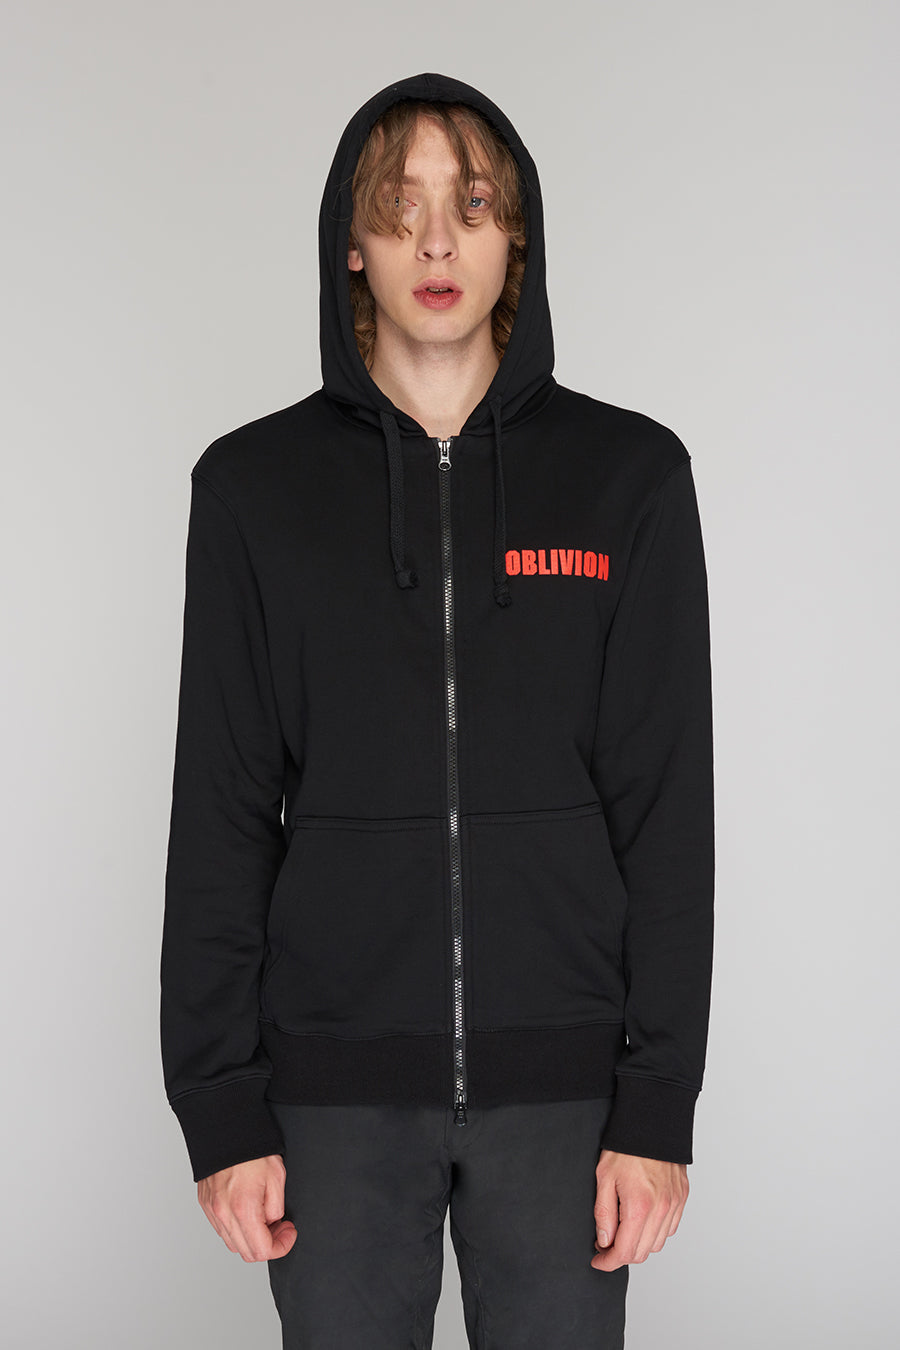 Long Clothing Oblivion Zip Top 3